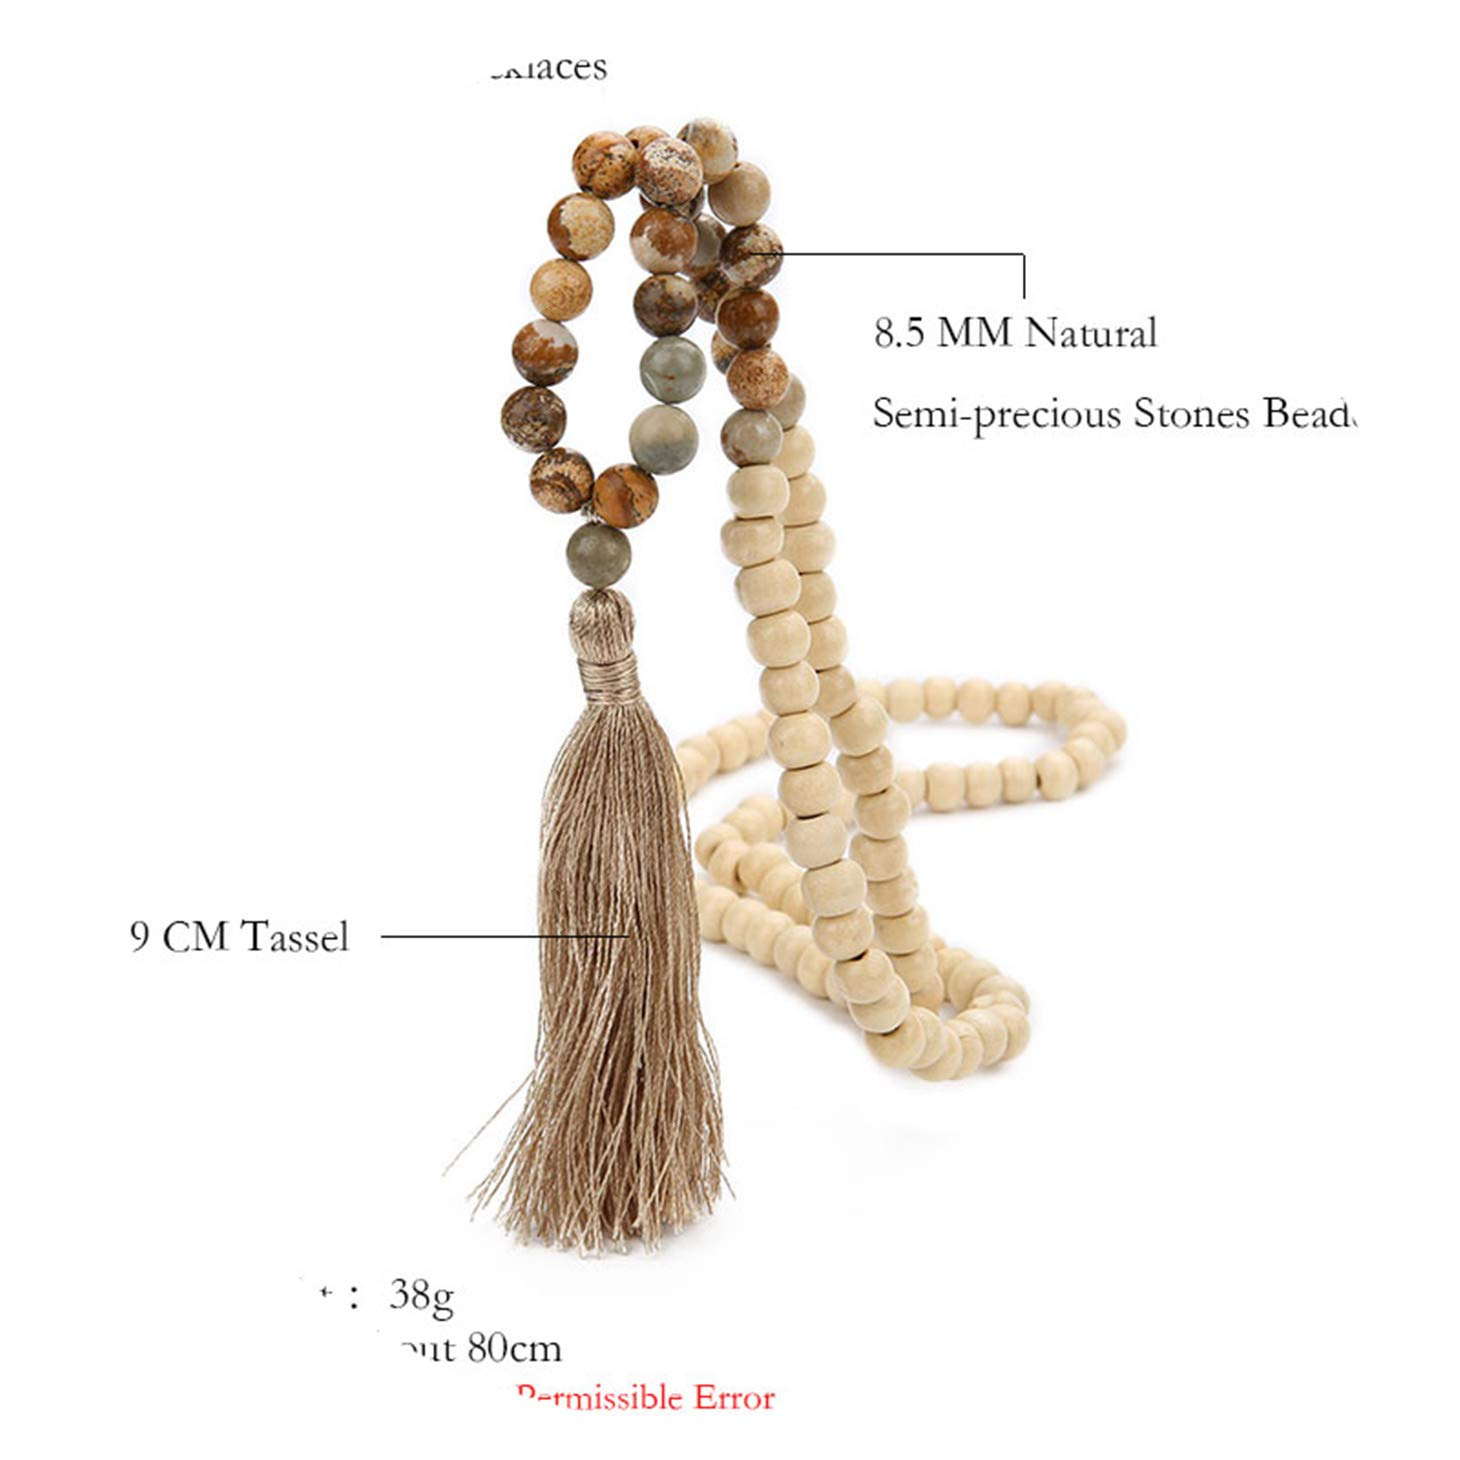 Olive Tayl Fashion Bohemian Tassel Yoga Wooden Jewelry Handmade Natural Stone Tassel Necklace for Women Lariat by Olive Tayl (Image #4)